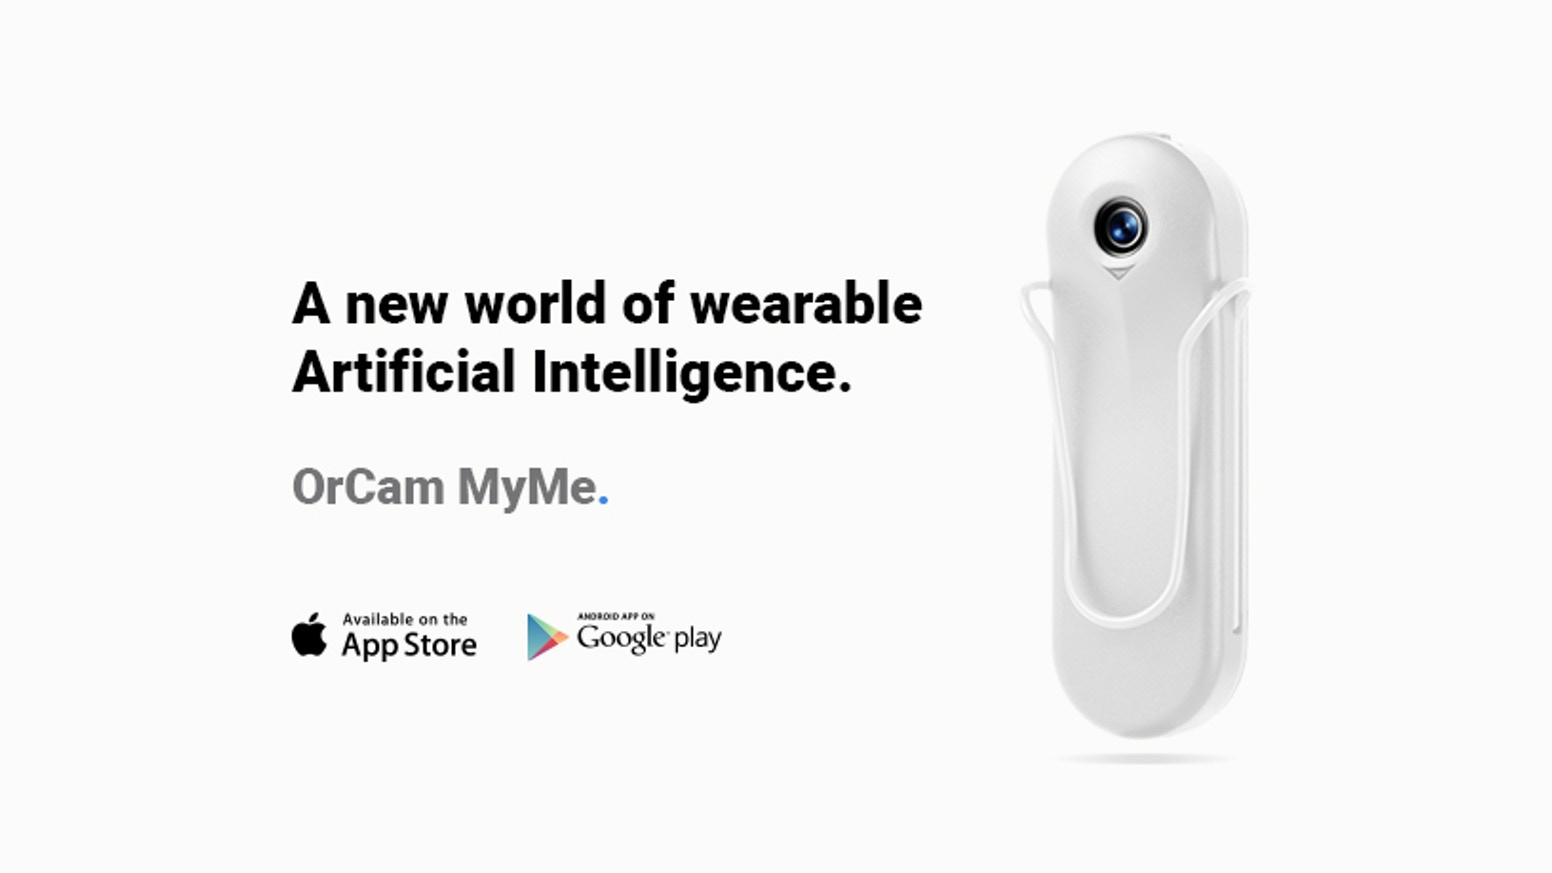 OrCam MyMe–1st of its kind wearable AI. 2nd brain. 3rd eye.